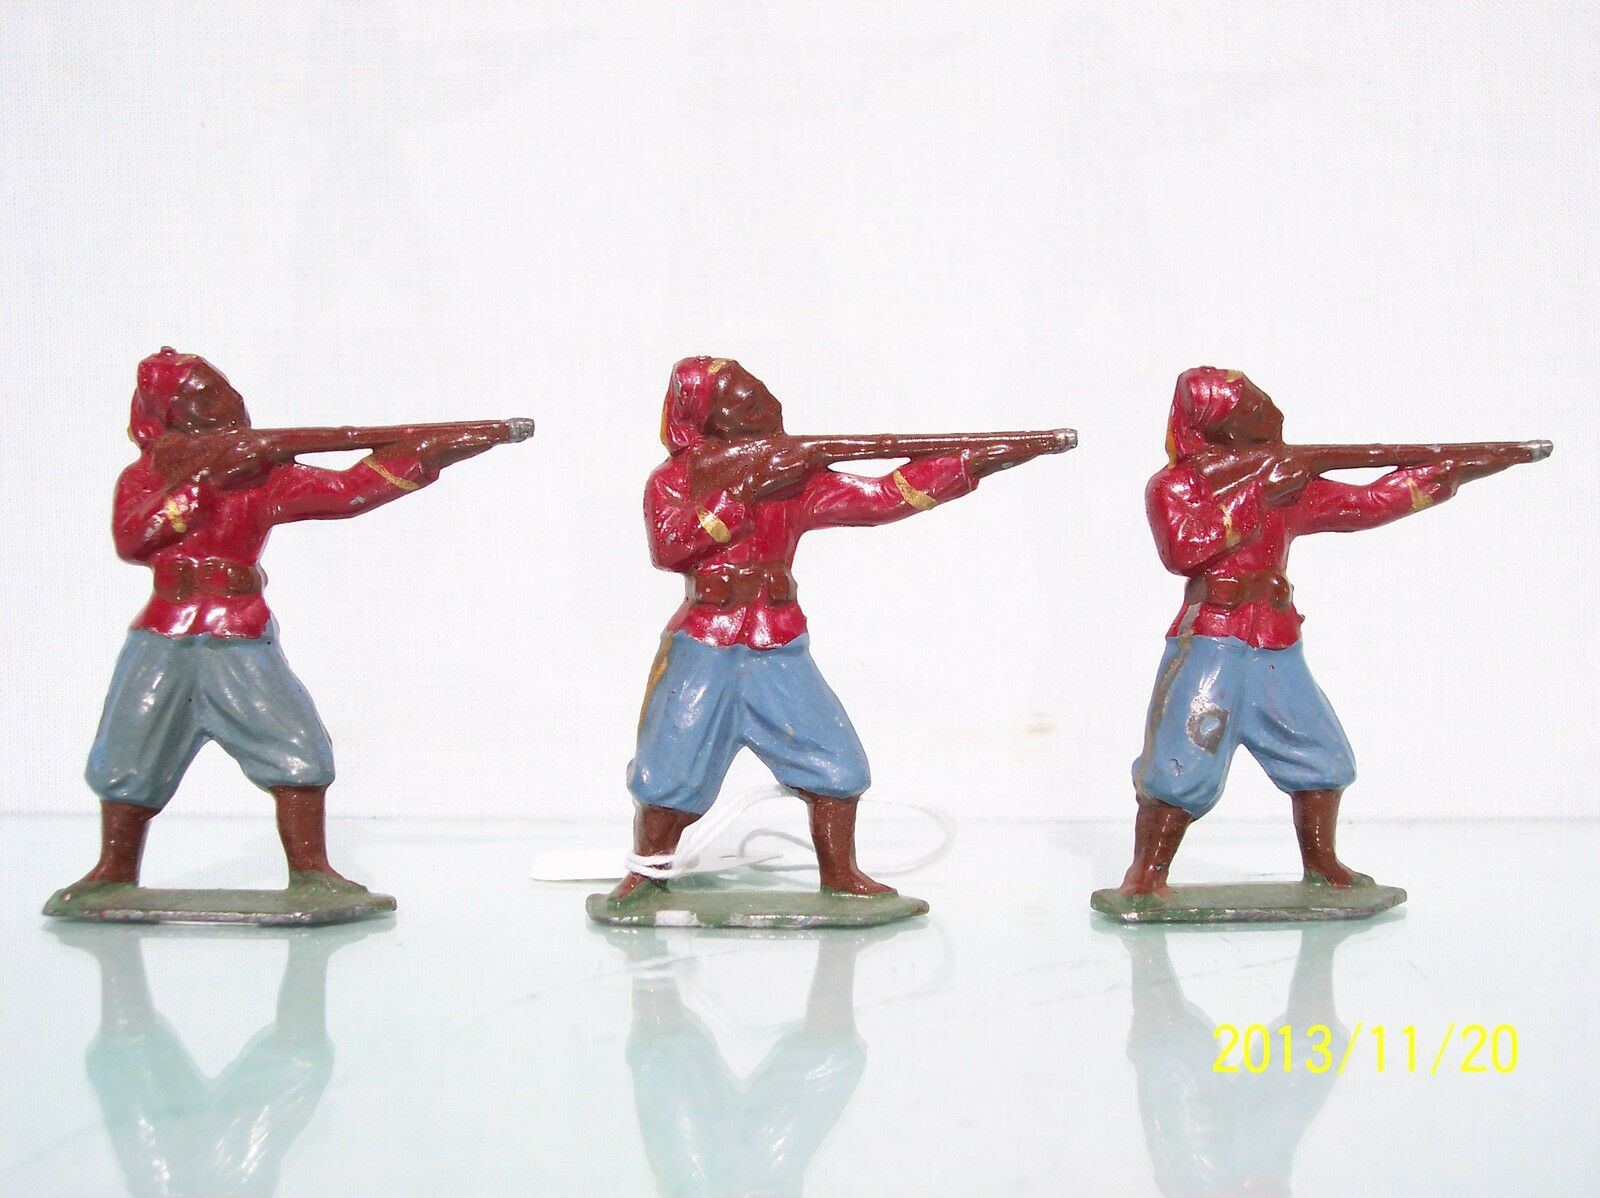 FRANCE FRANCE FRANCE LEAD (3) 55MM J.F. FRENCH ZOUAVES STANDING FIRING EX 986